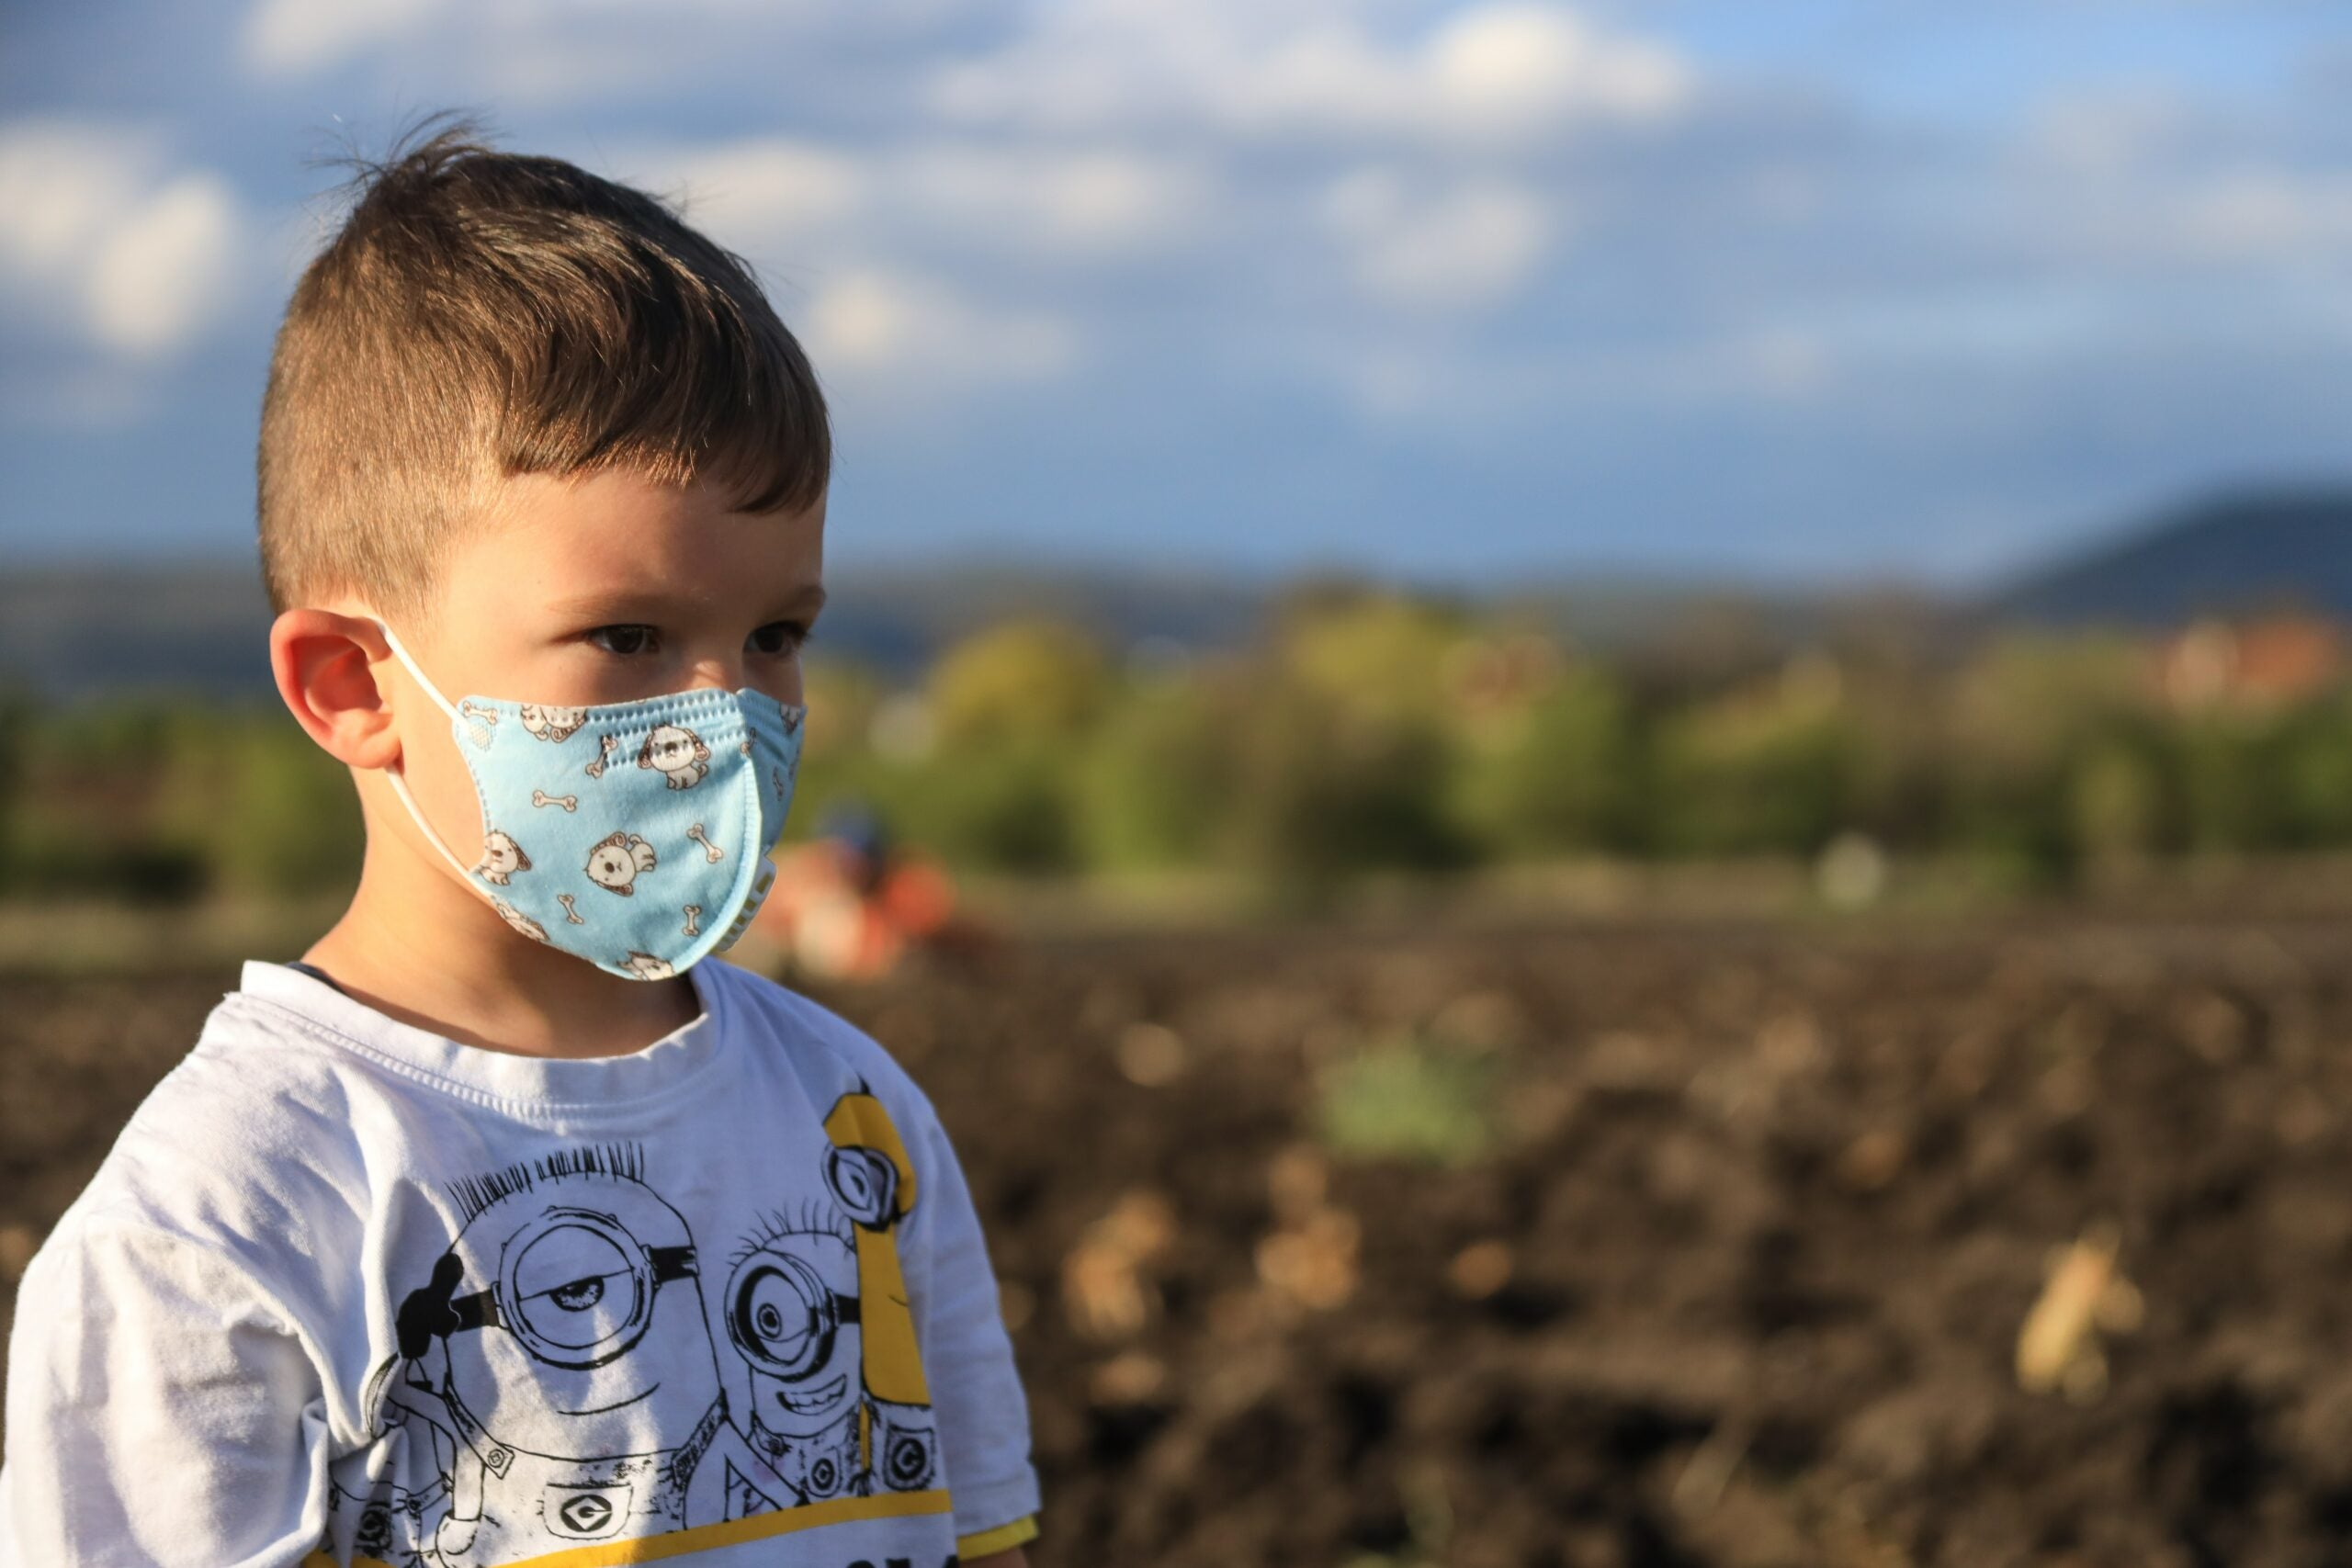 A kid with a cartoon-themed mask standing in a field